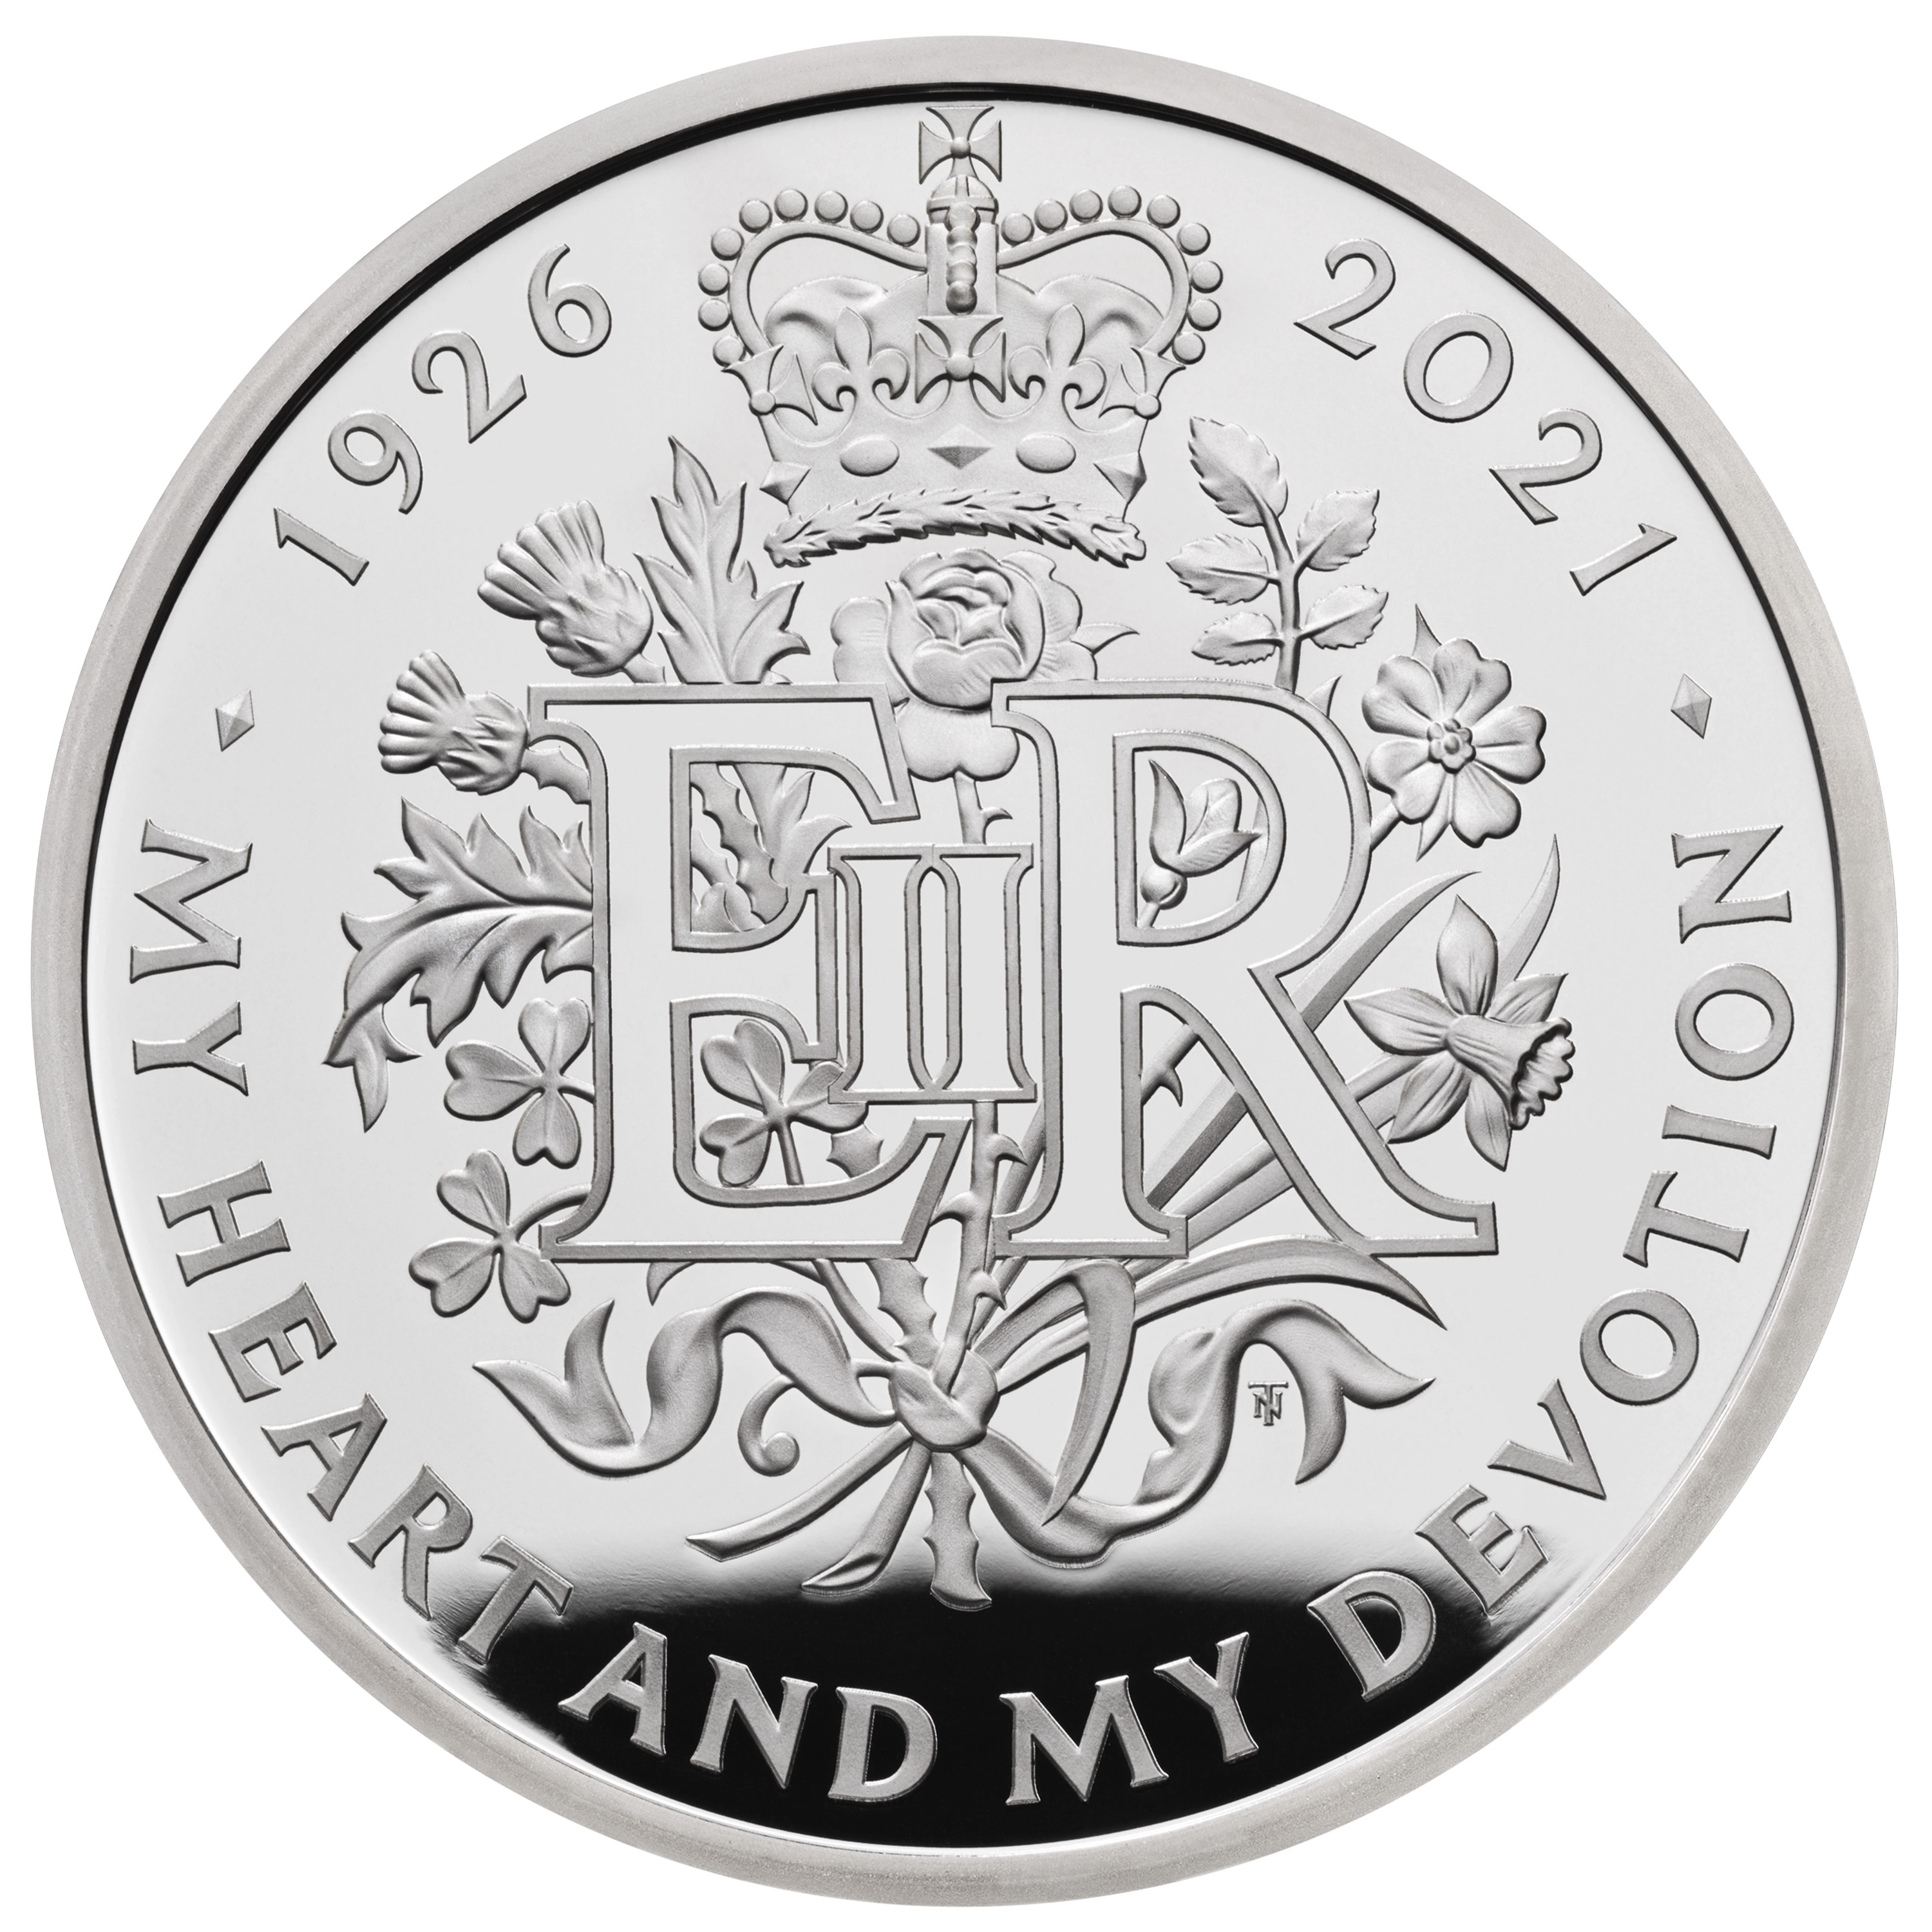 The 95th Birthday of Her Majesty The Queen Commemorative Coins